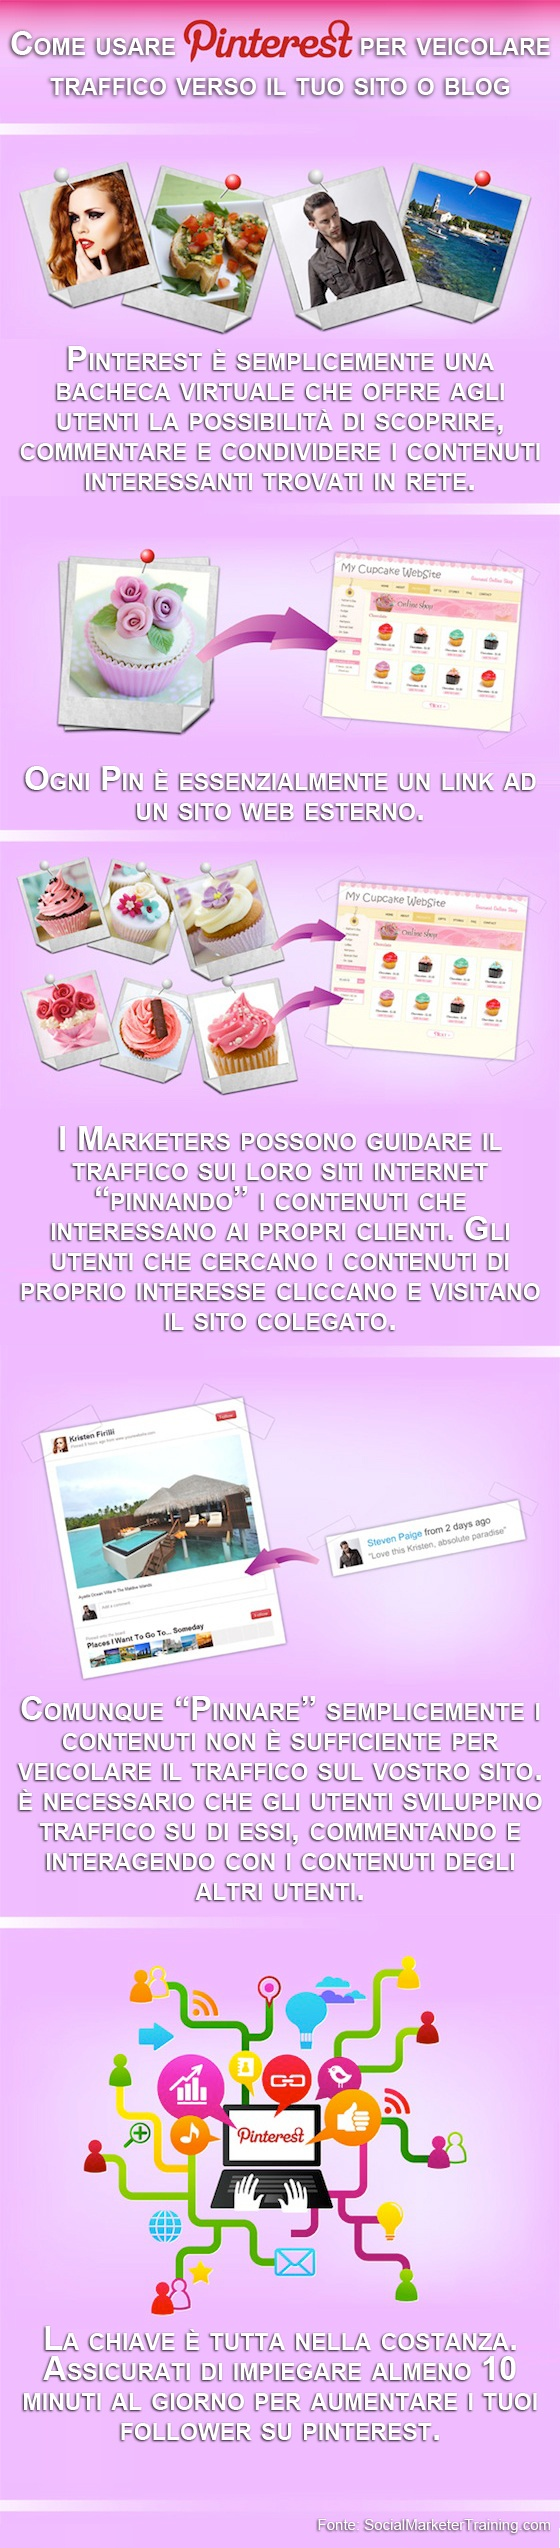 How to use pinterest (in Italian, apologies for non-Italian speaking friends)